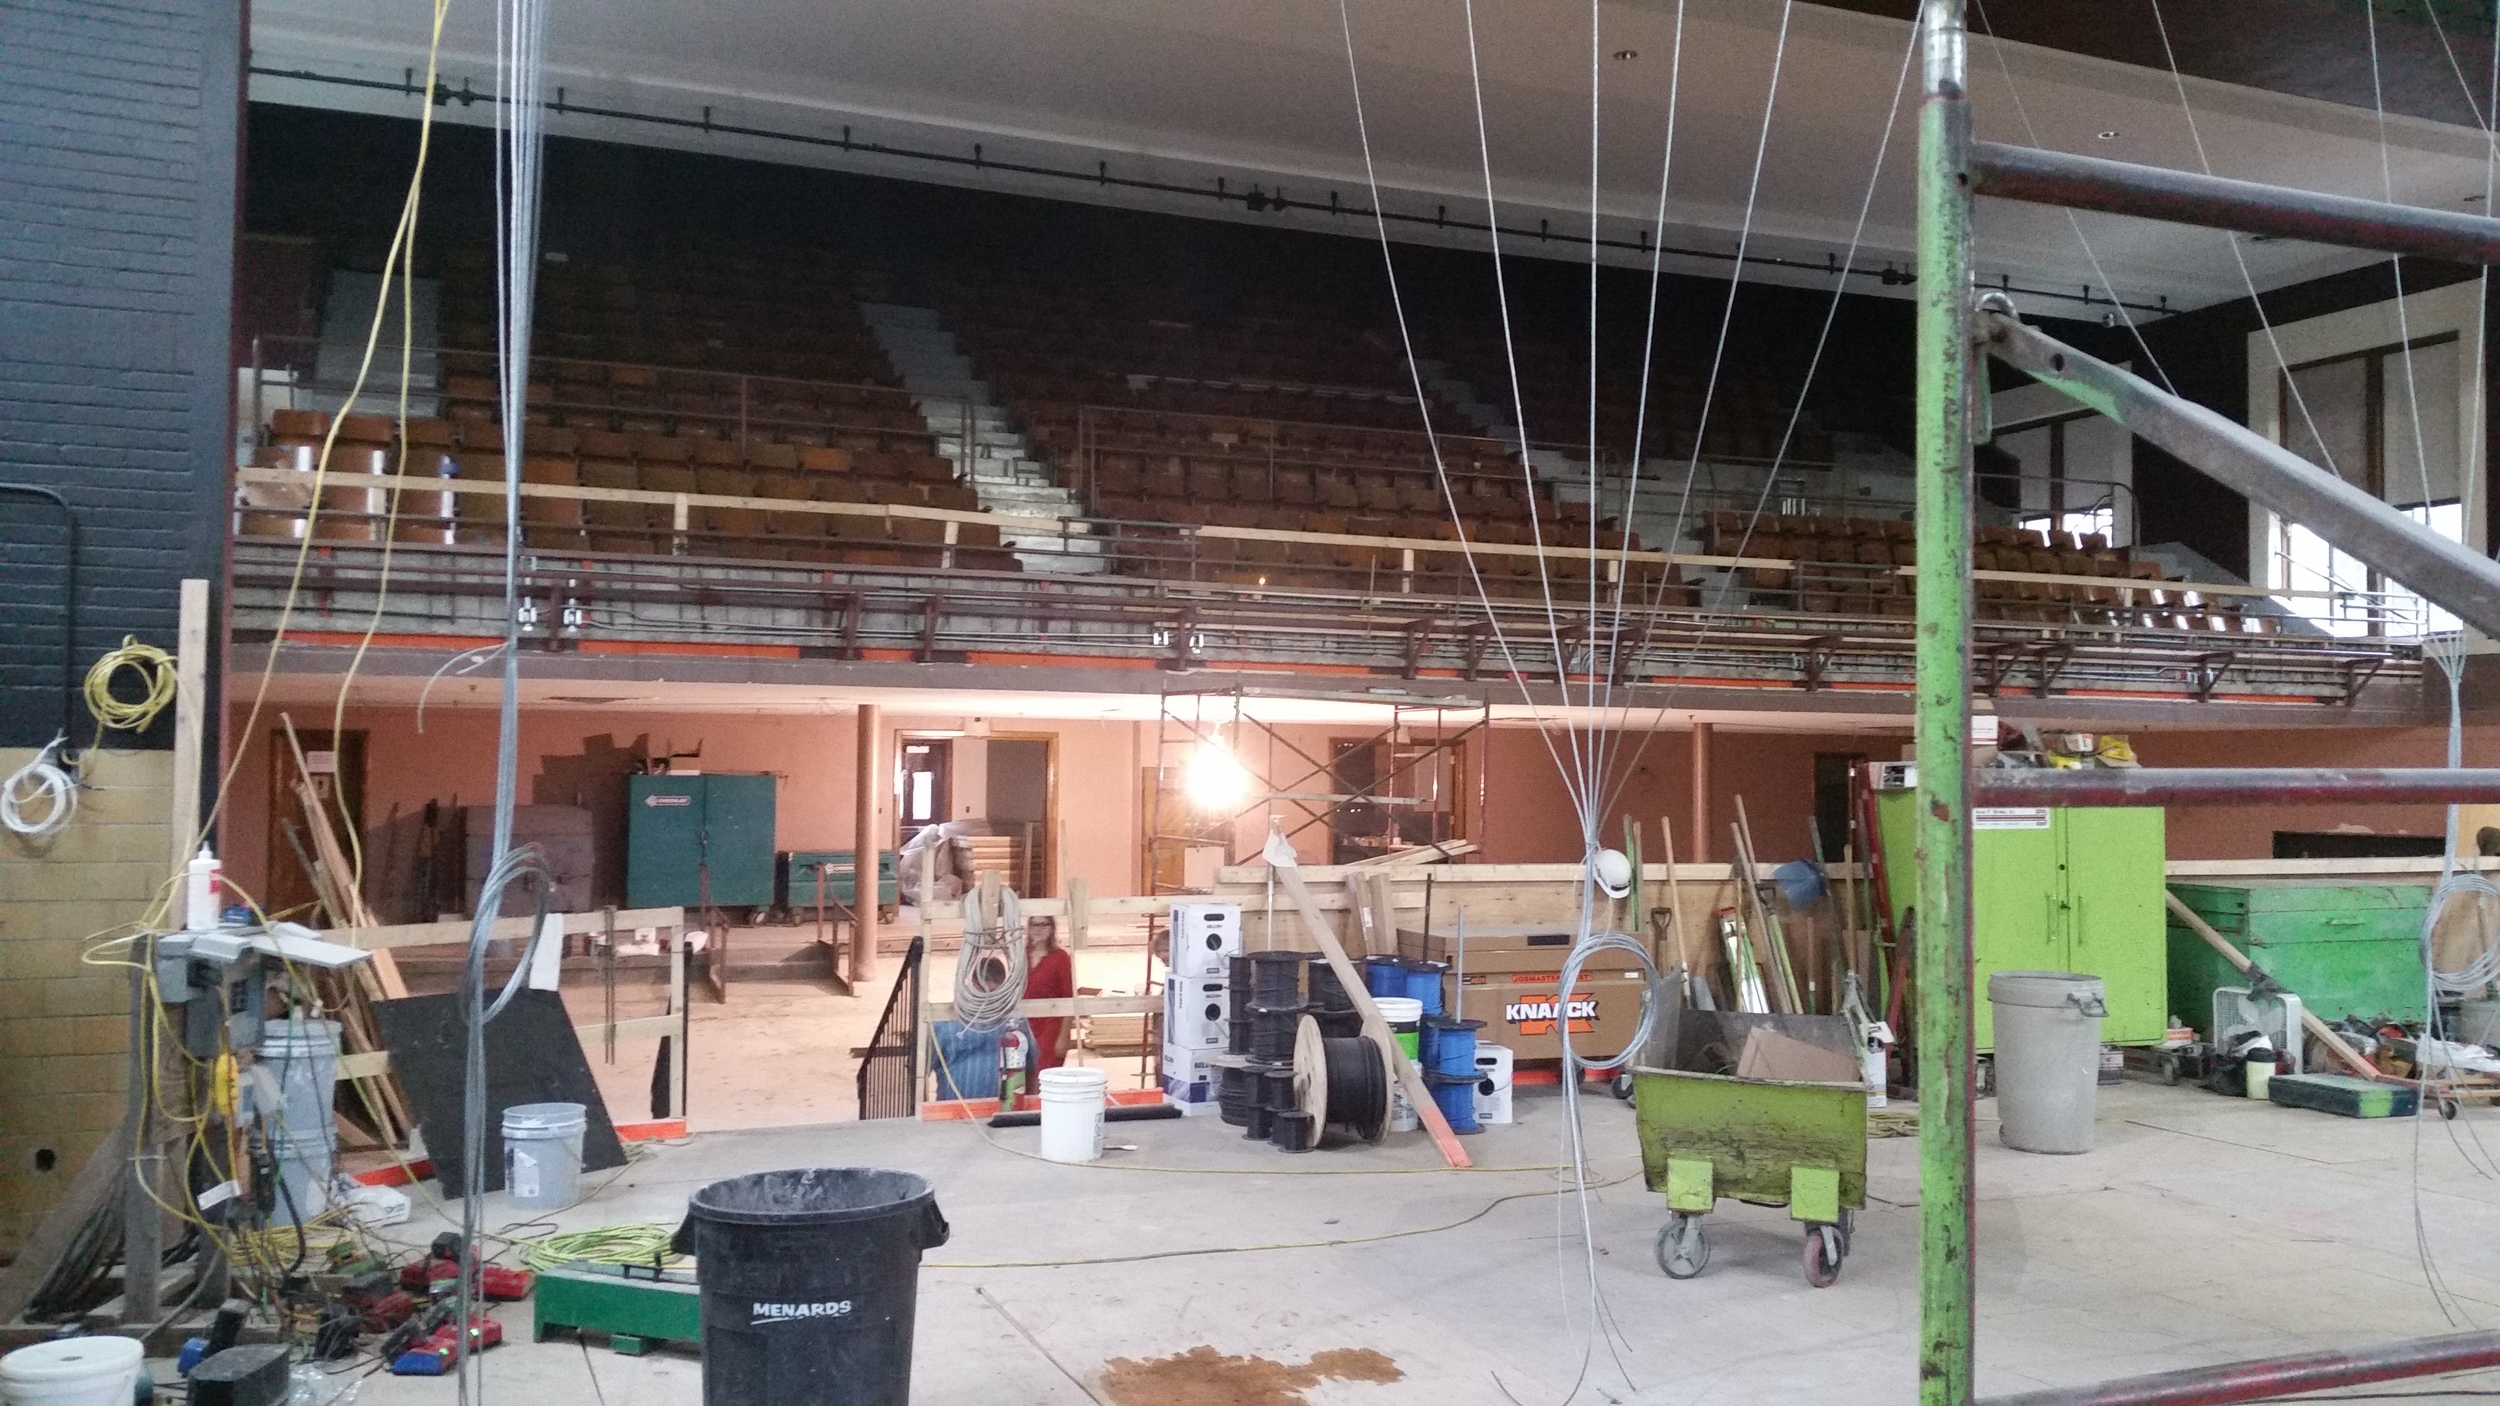 The theater at Chatfield Center for the Arts mid-renovation.